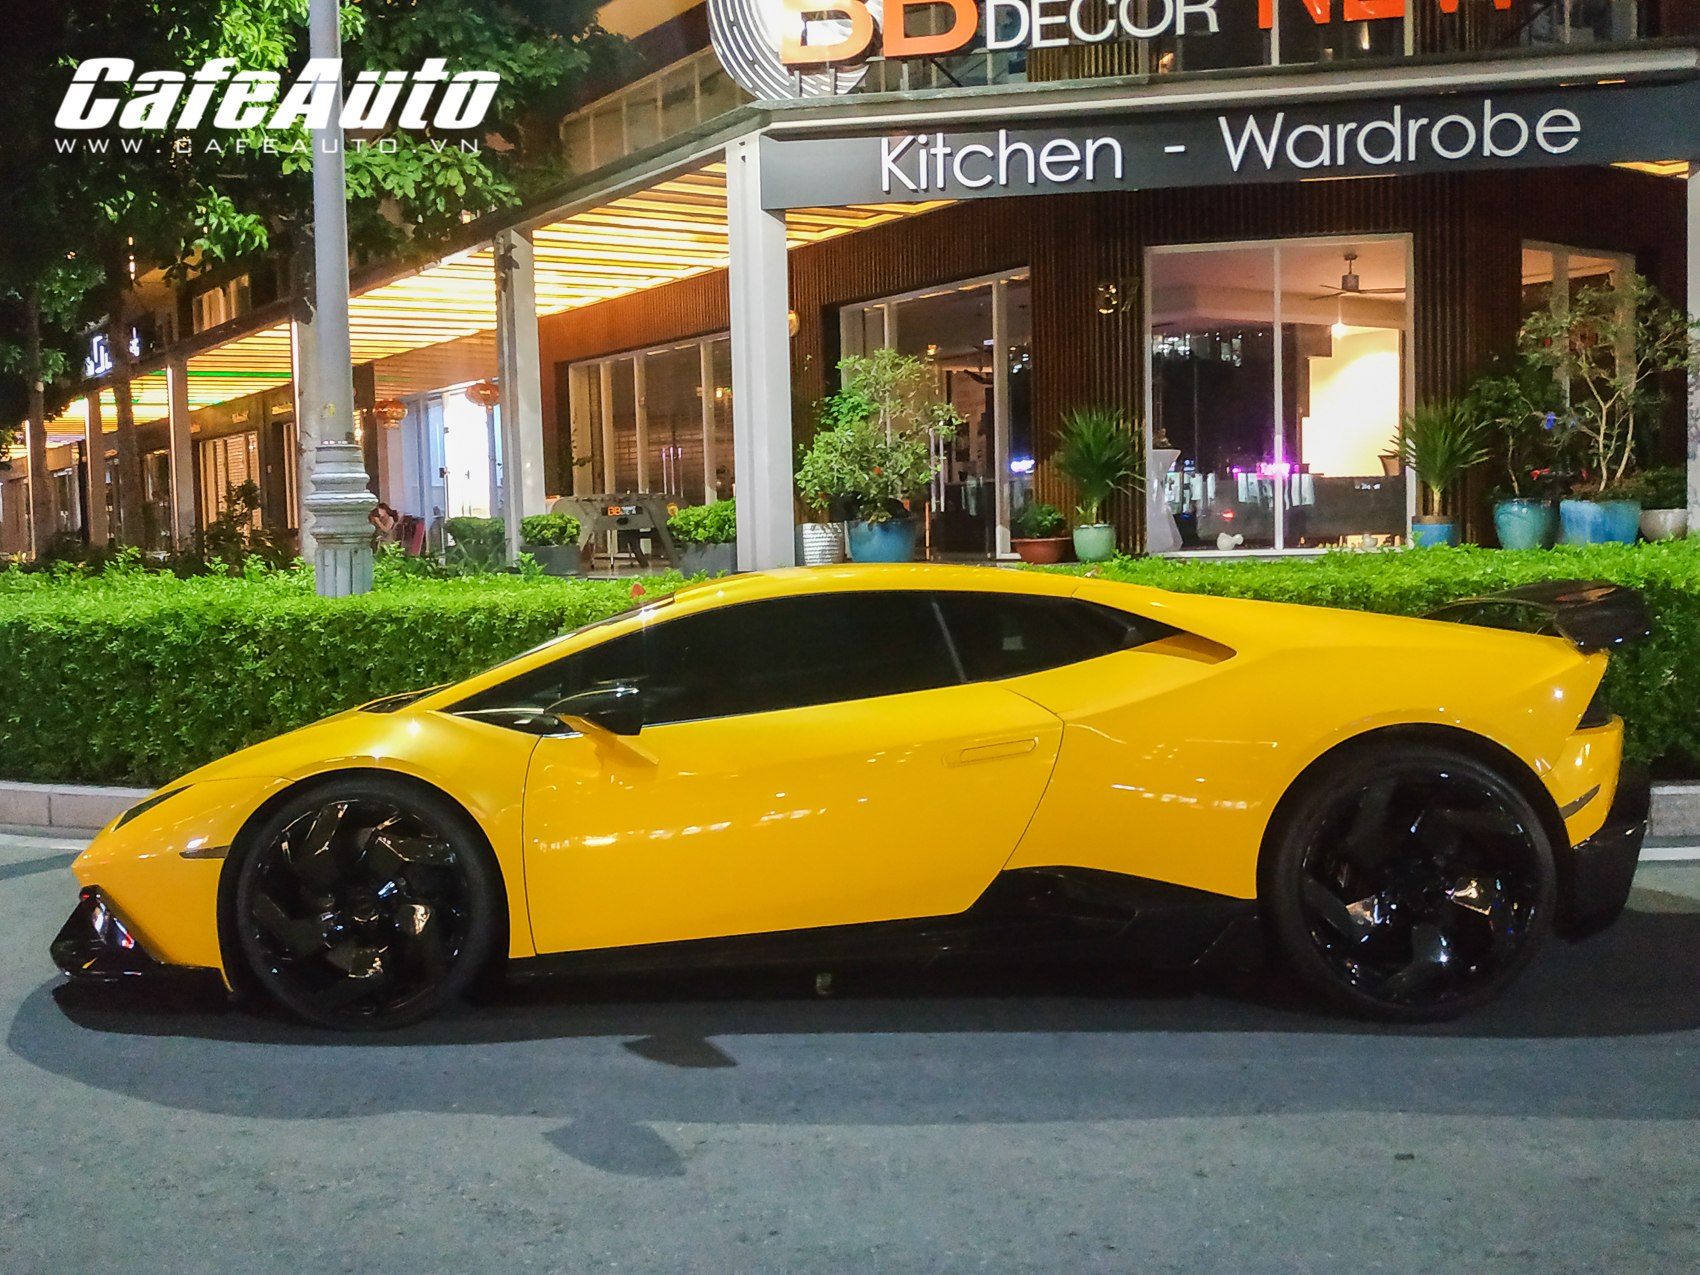 huracanmansory-cafeautovn-15